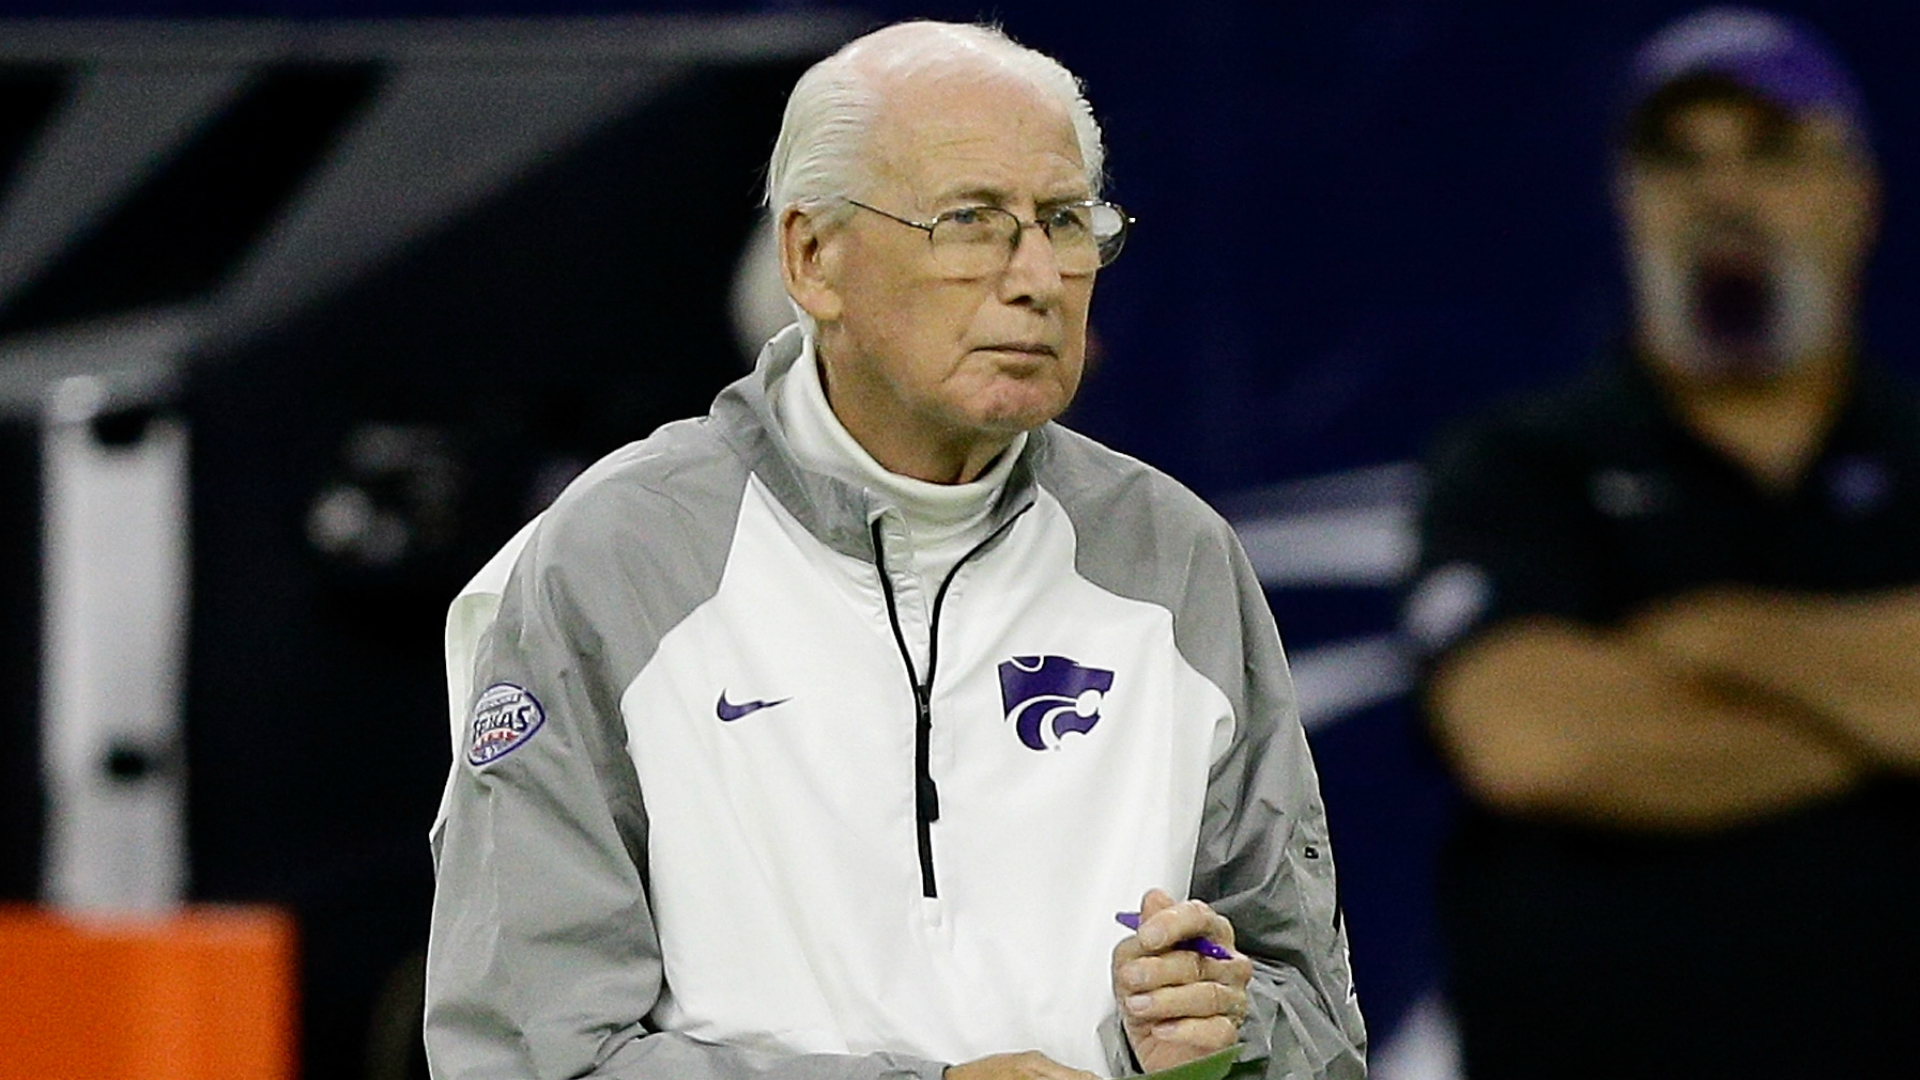 Bill Snyder defends decision not to release K-State player from scholarship